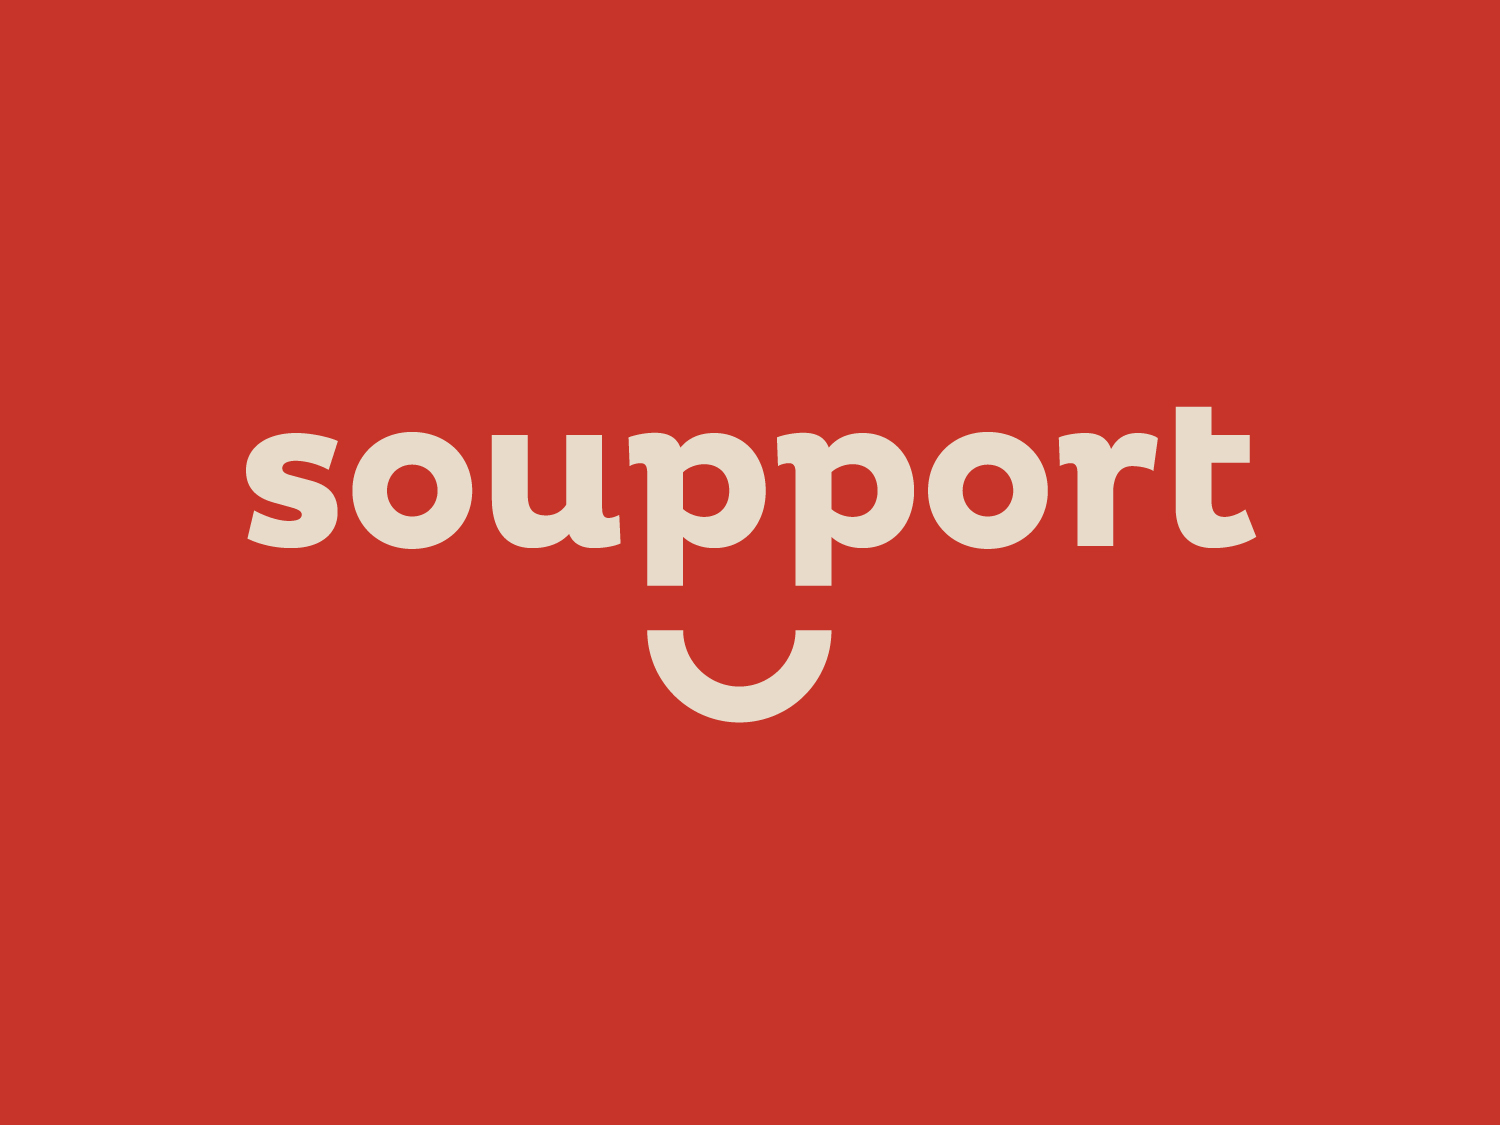 Copy of Soupport